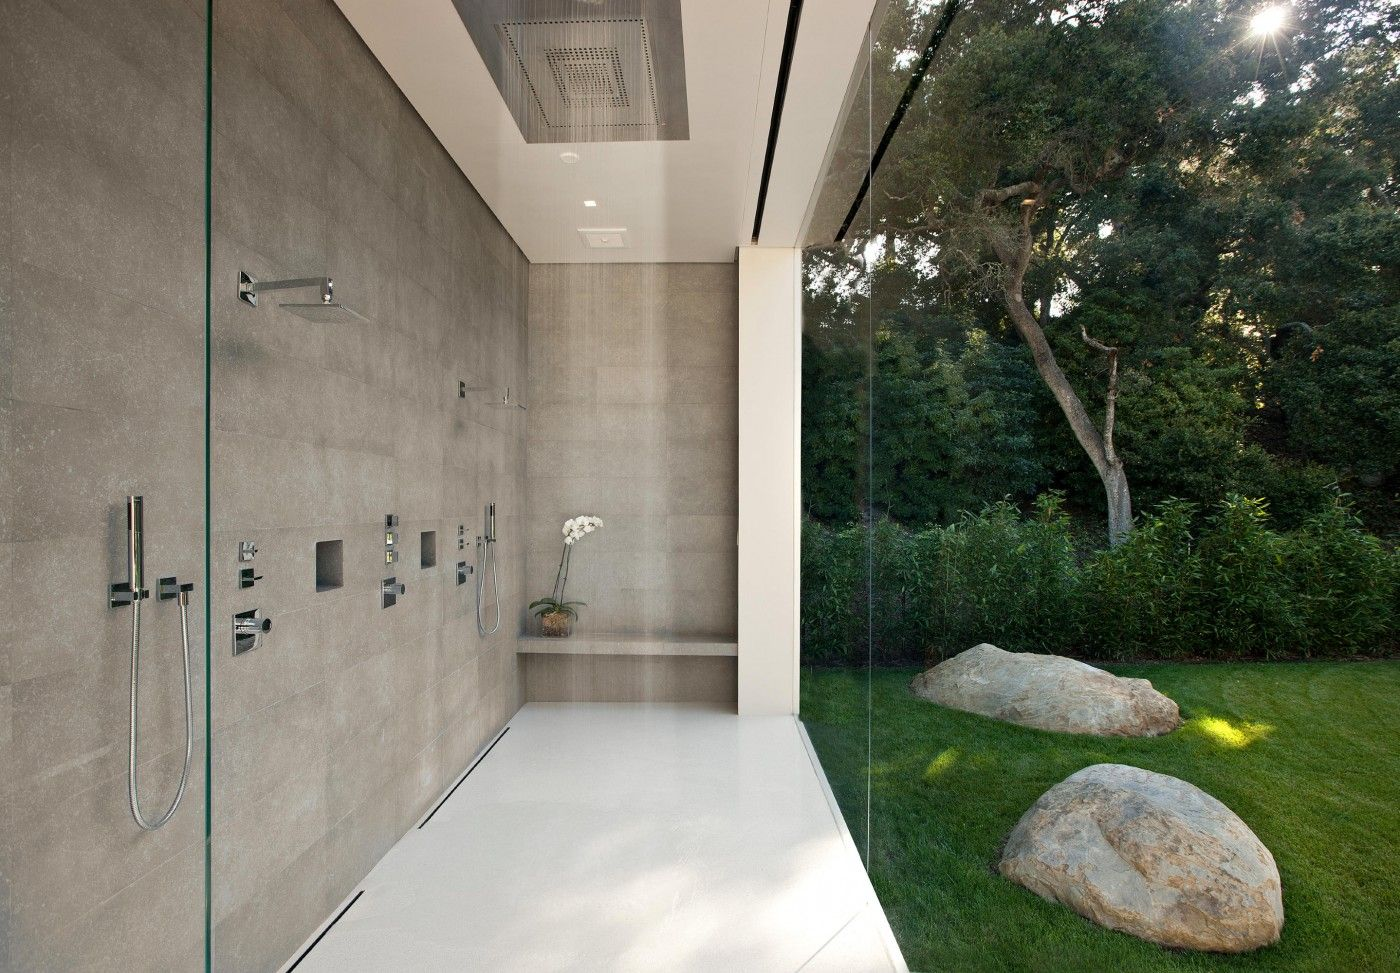 Shower and glass wall in the most minimalist house bathroom